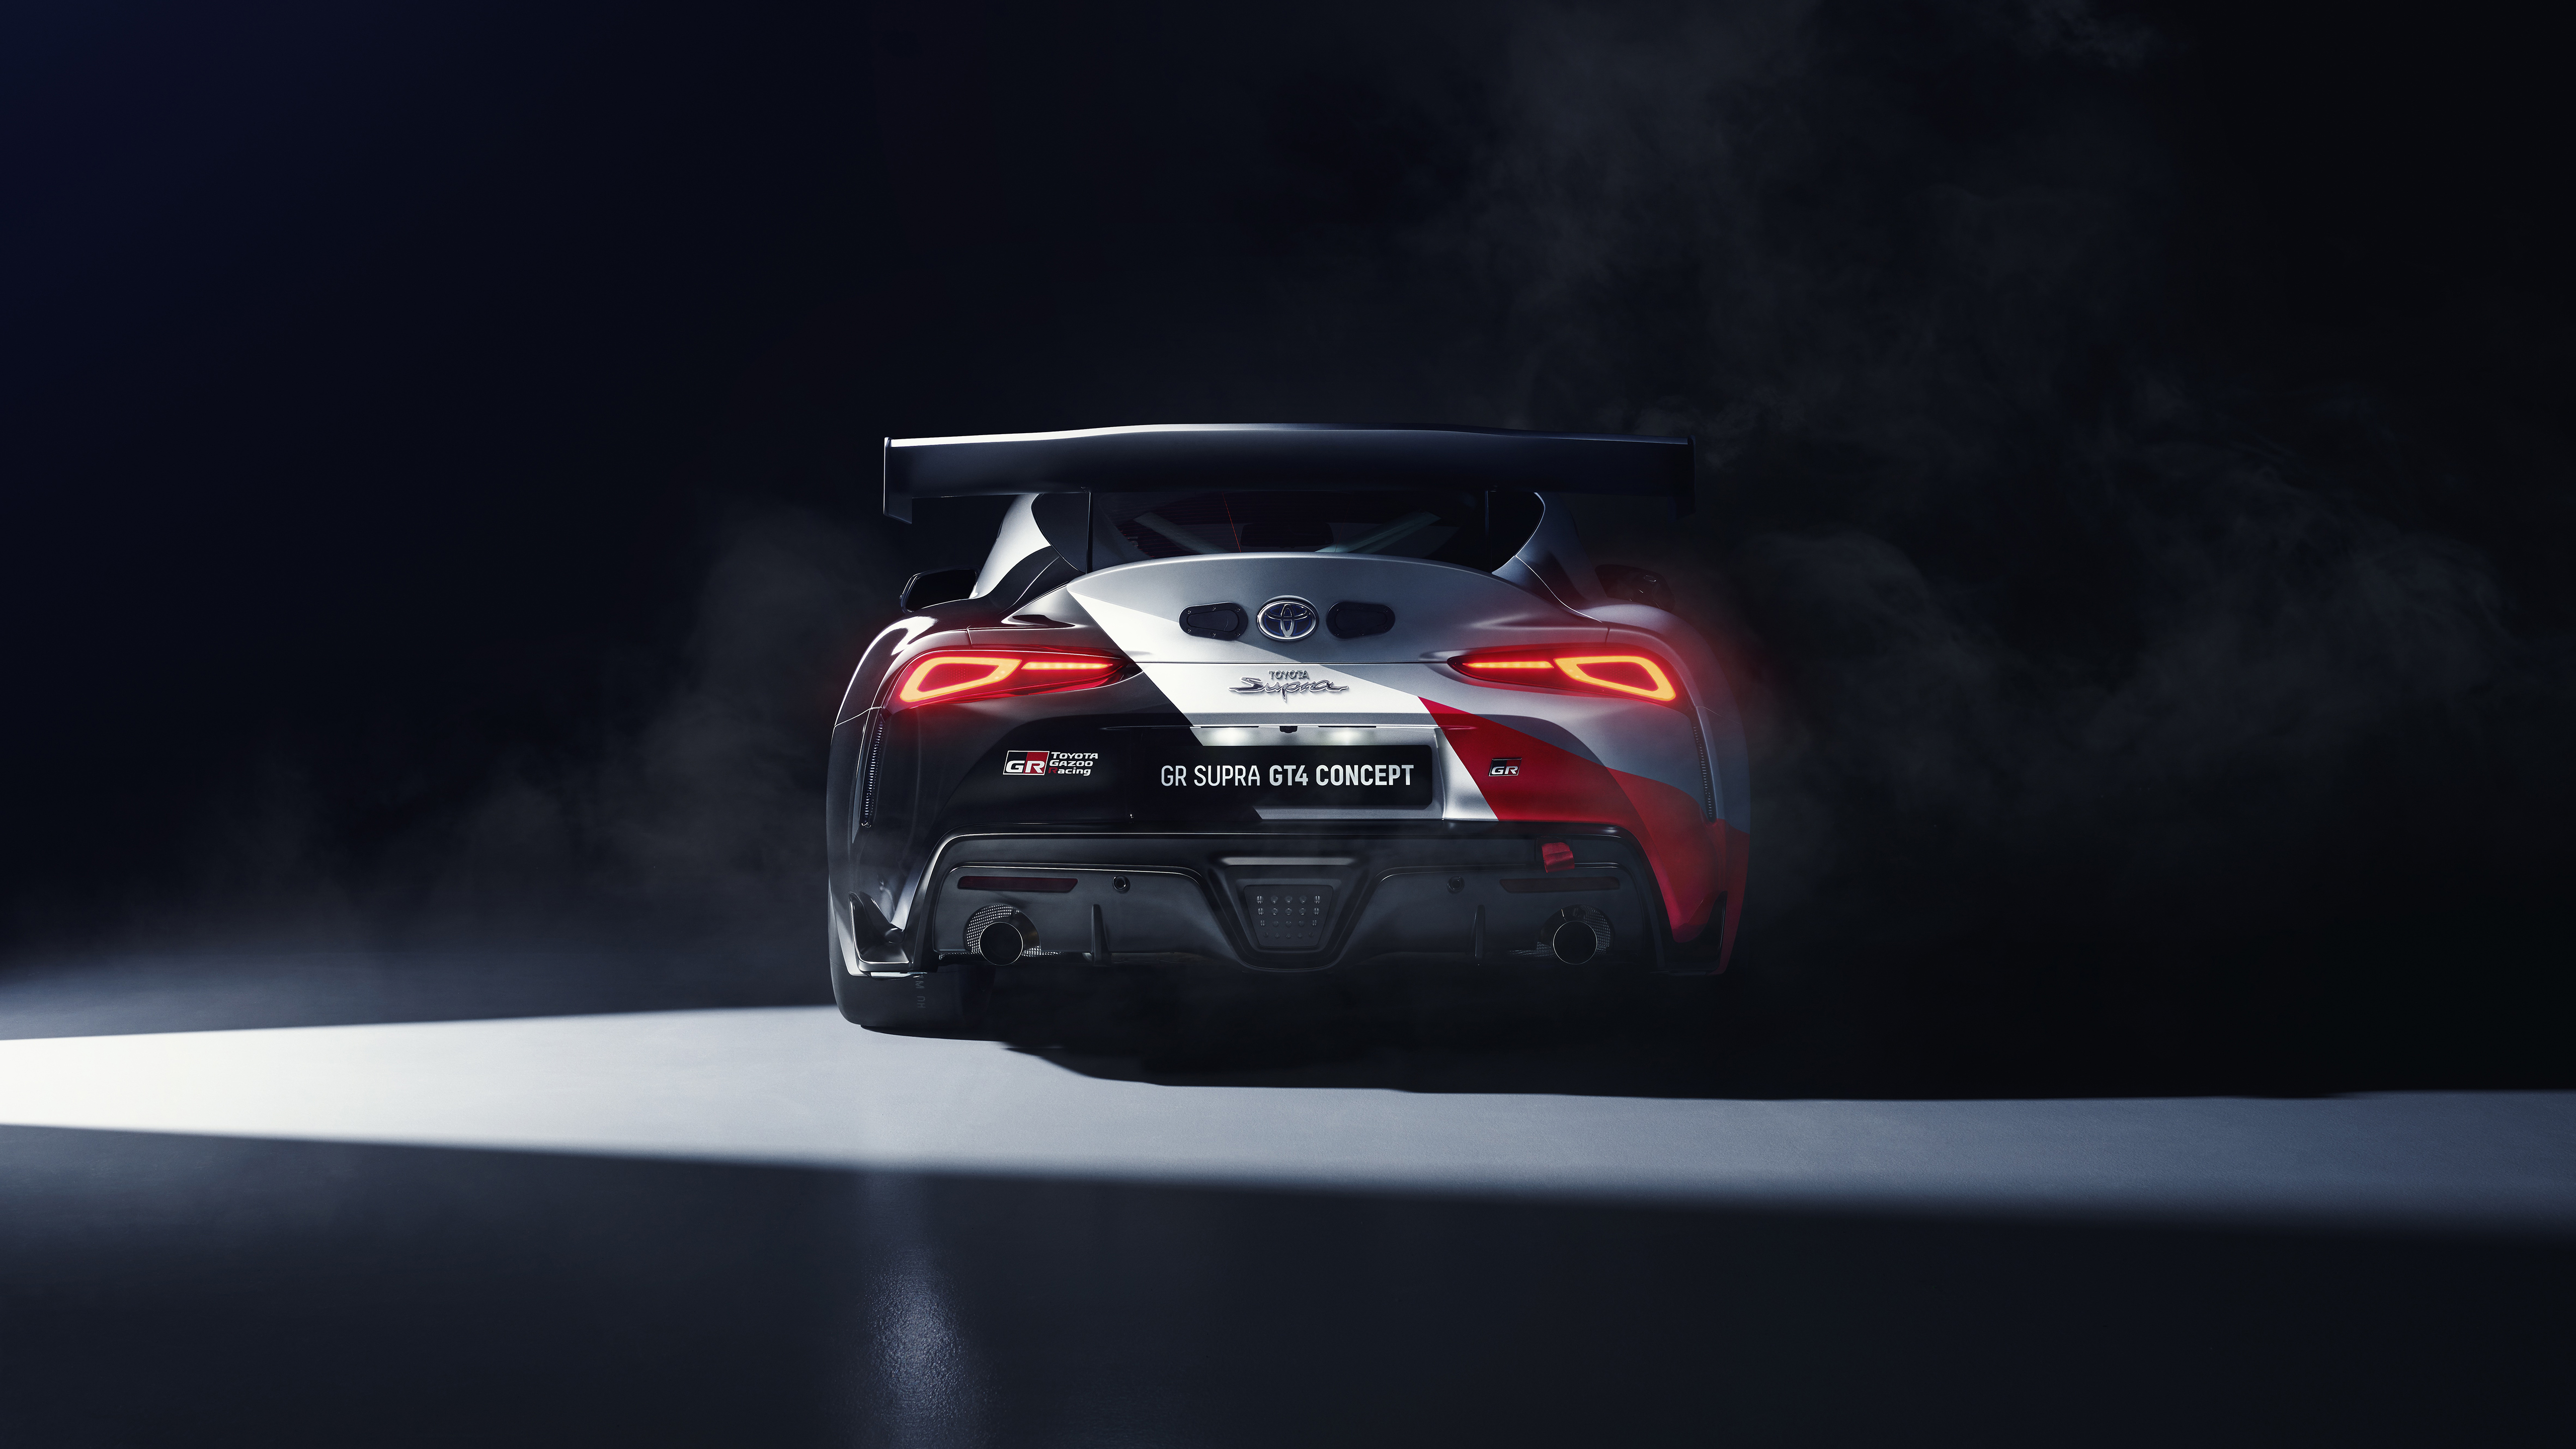 Toyota GR Supra GT4 Concept 2019 4K 5K 4 Wallpaper HD Car 5120x2880